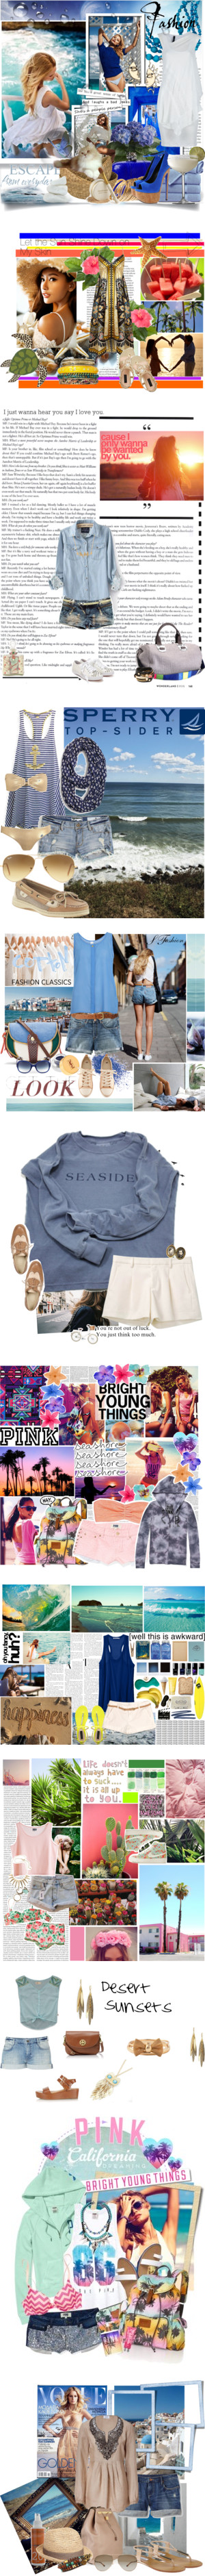 """Vacation wear"" by gtorre ❤ liked on Polyvore"